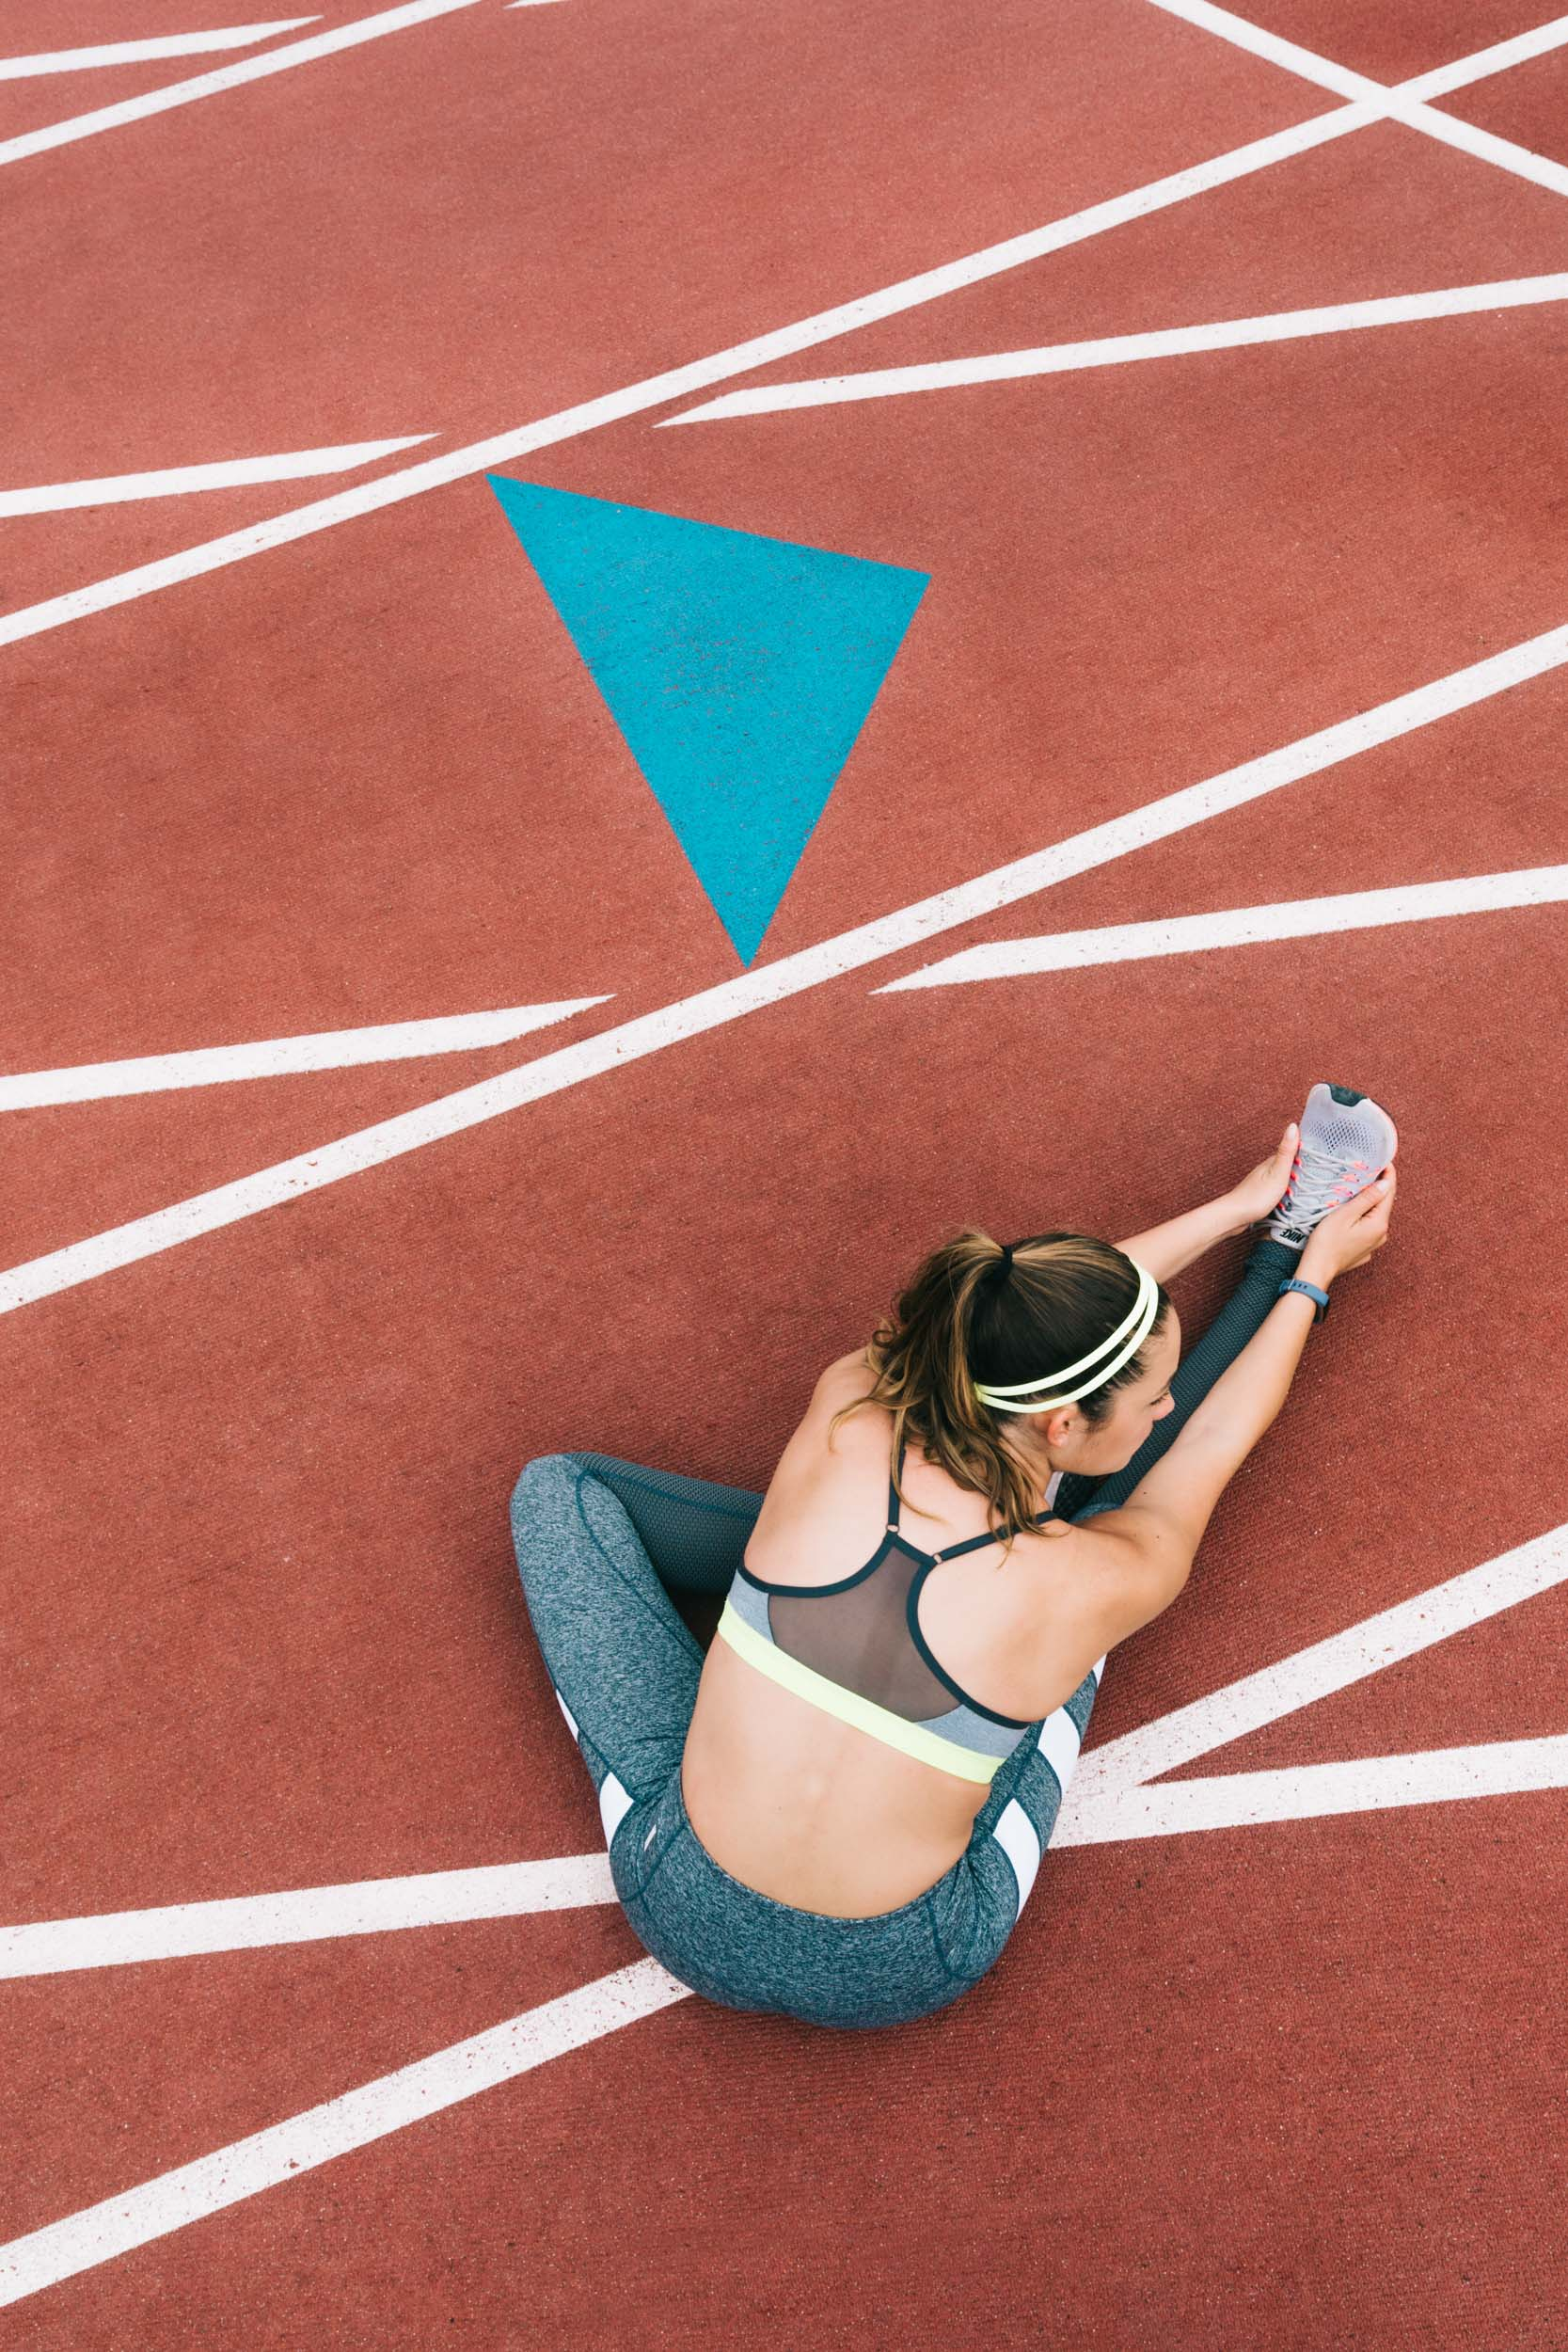 Overhead view of female athlete wearing sports bra and pants stretching on a red track